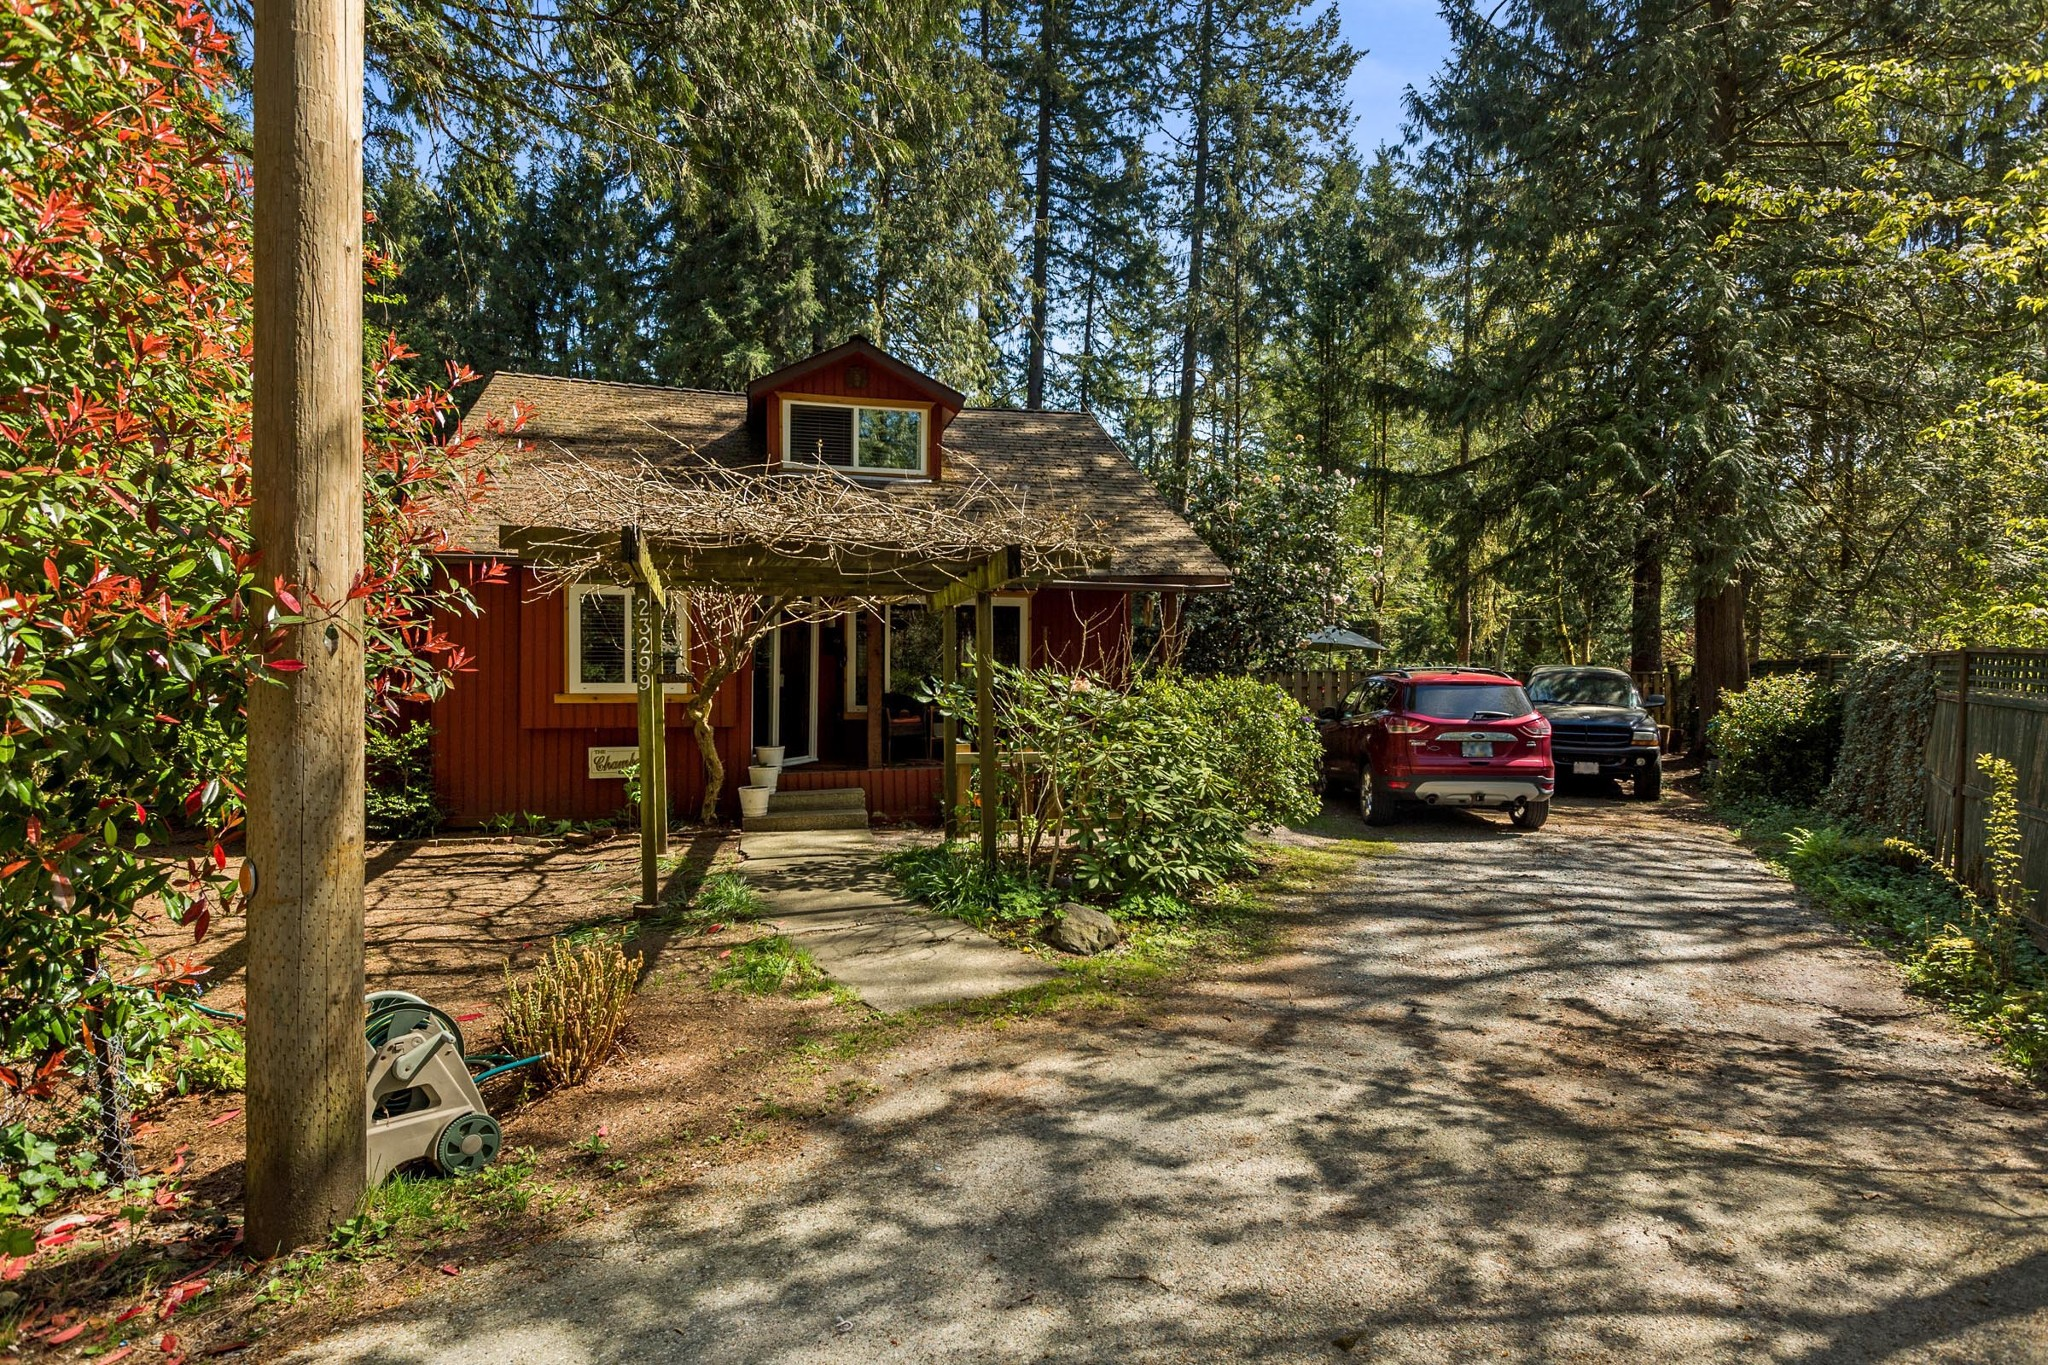 Main Photo: 23299 130 Avenue in Maple Ridge: East Central House for sale : MLS®# R2262762